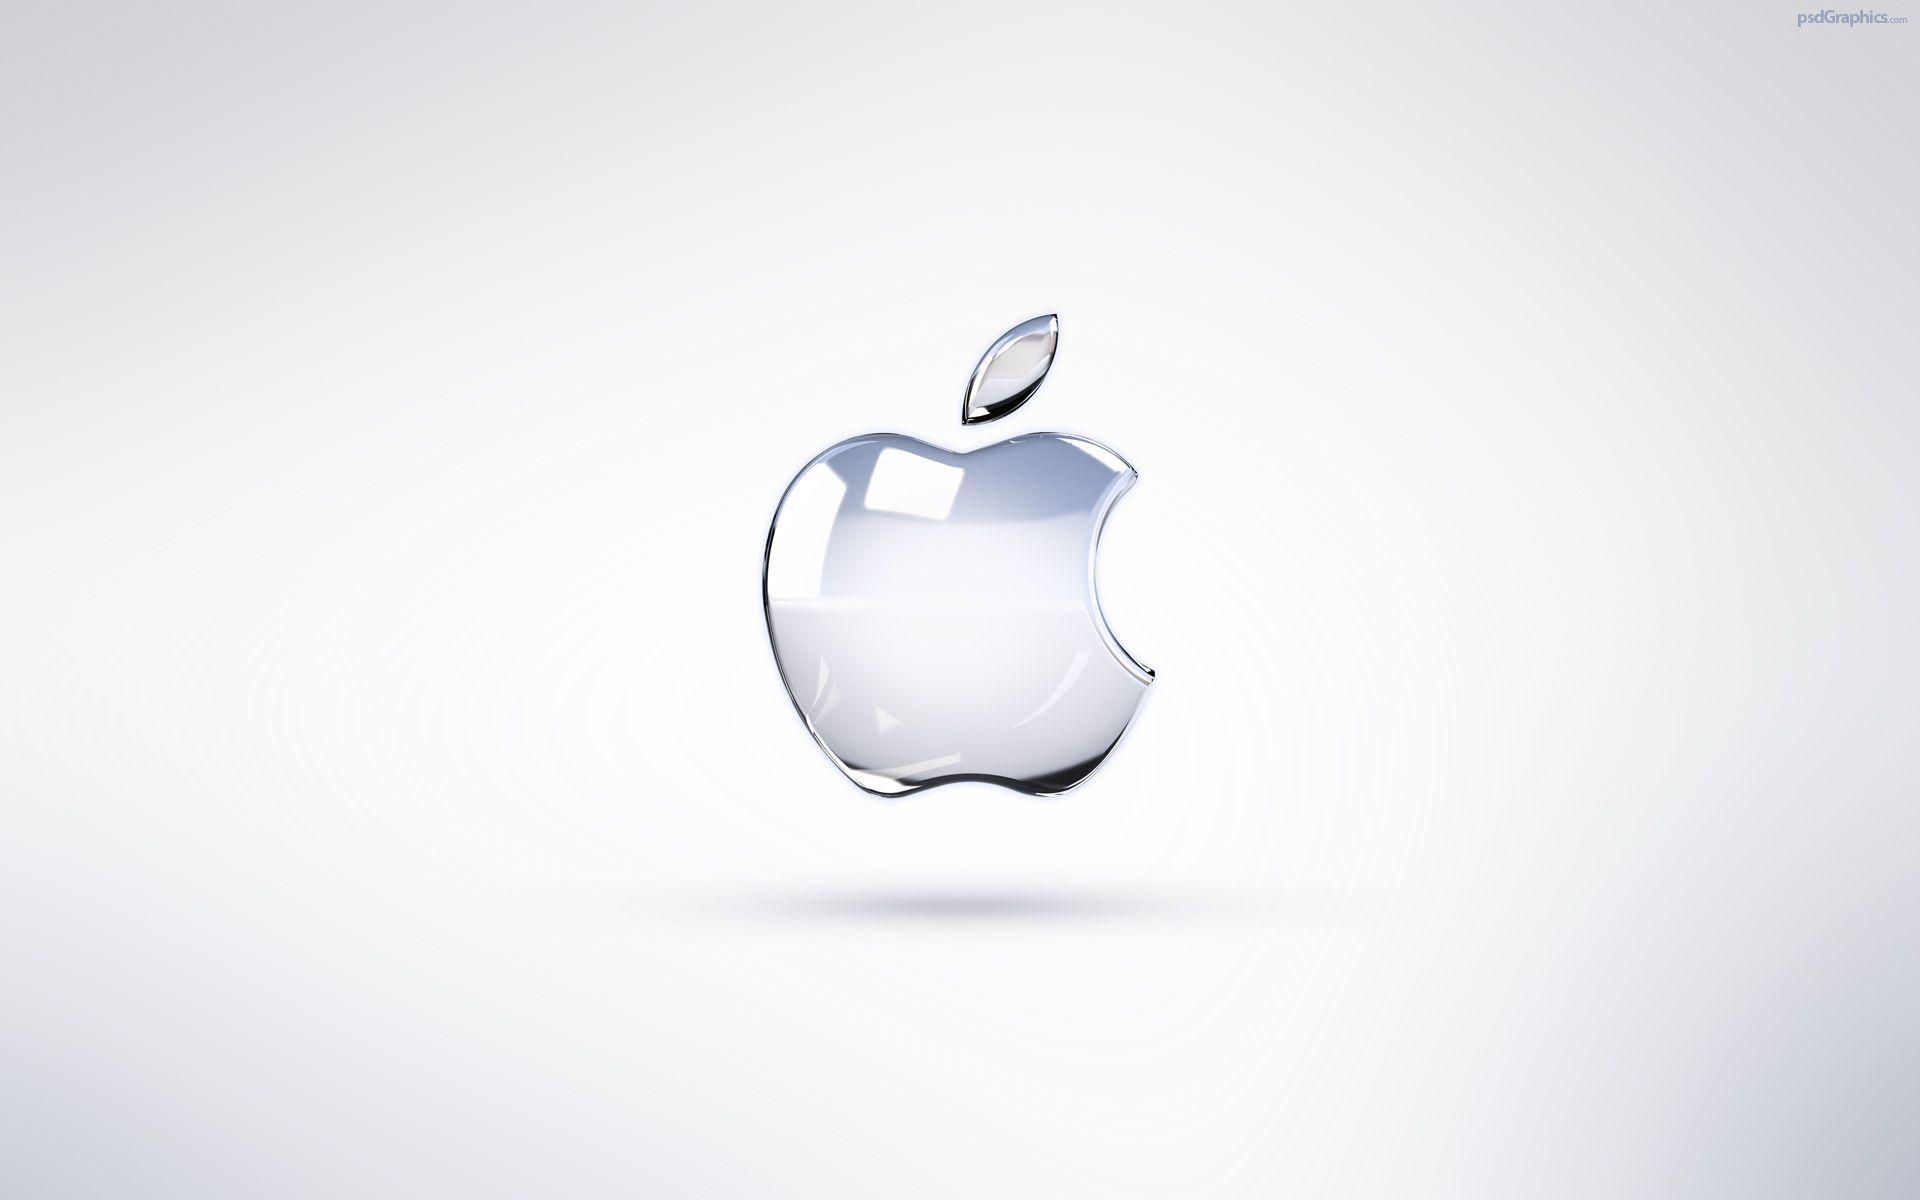 Wallpapers For White Apple Logo Wallpaper Iphone